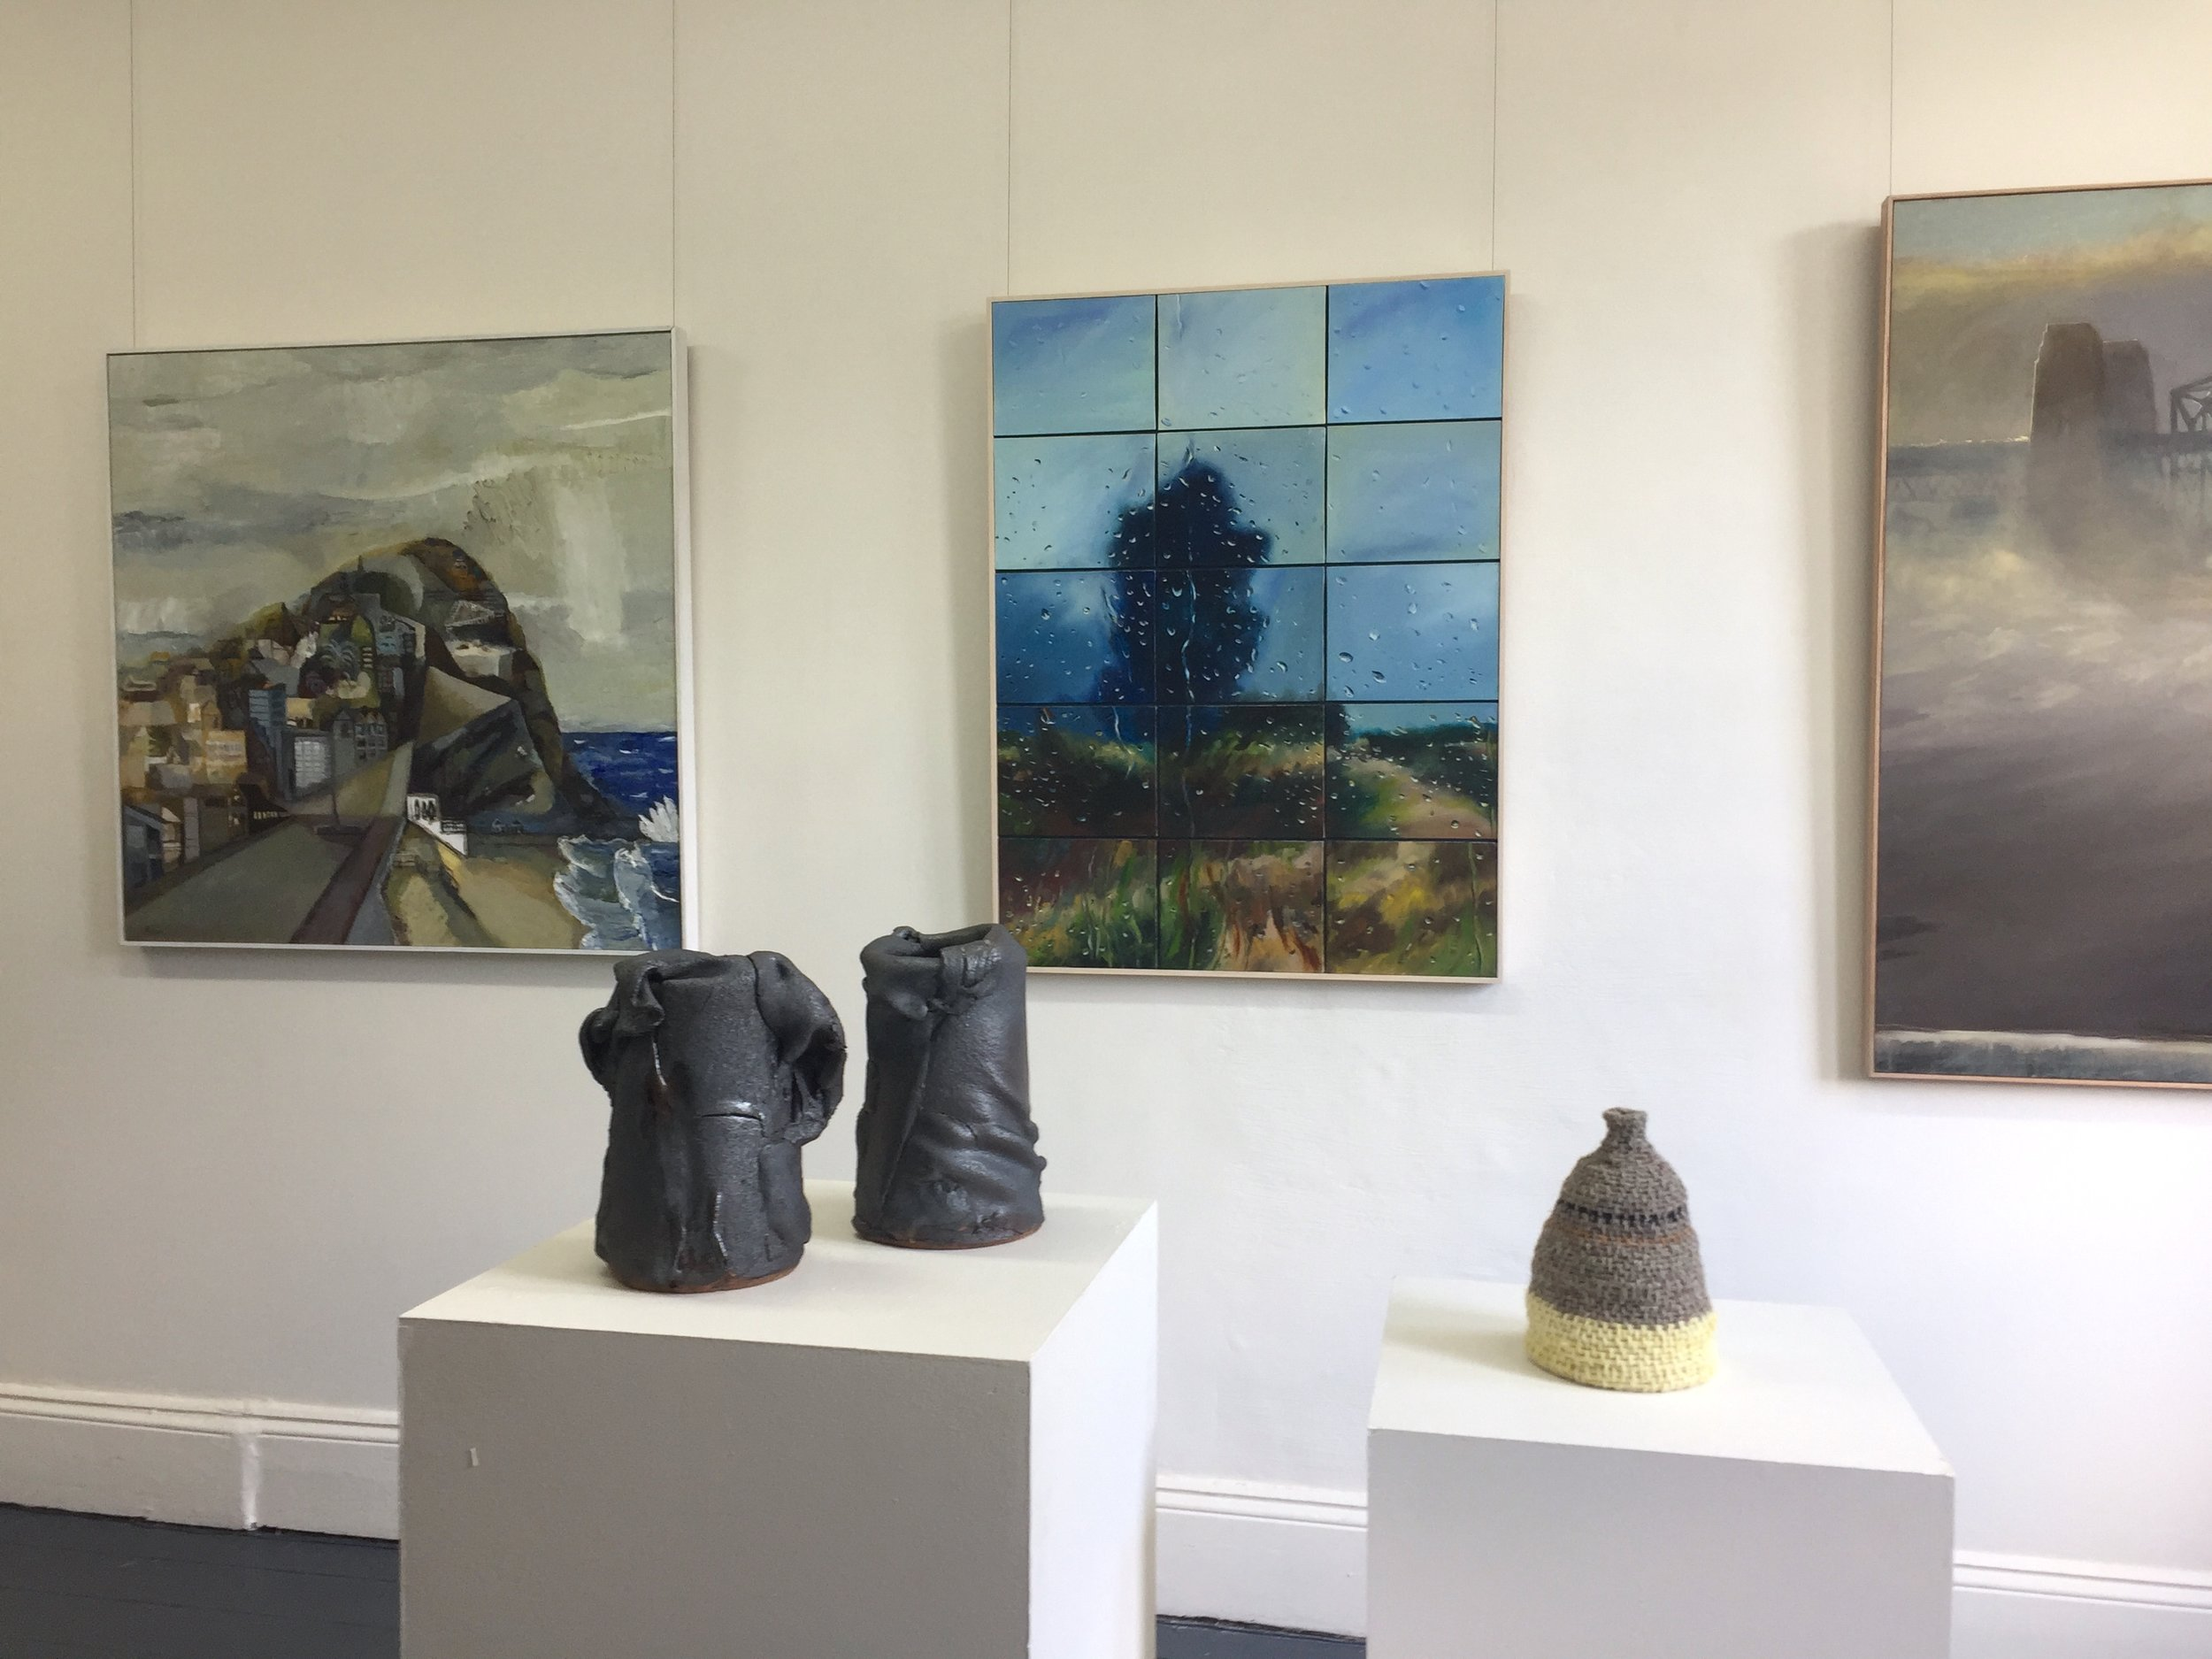 nstall view including paintings by Paul Maher, Shelagh Lummis, Dino Consalvo and ceramics by John Heaney and textiles by Melissa Bull